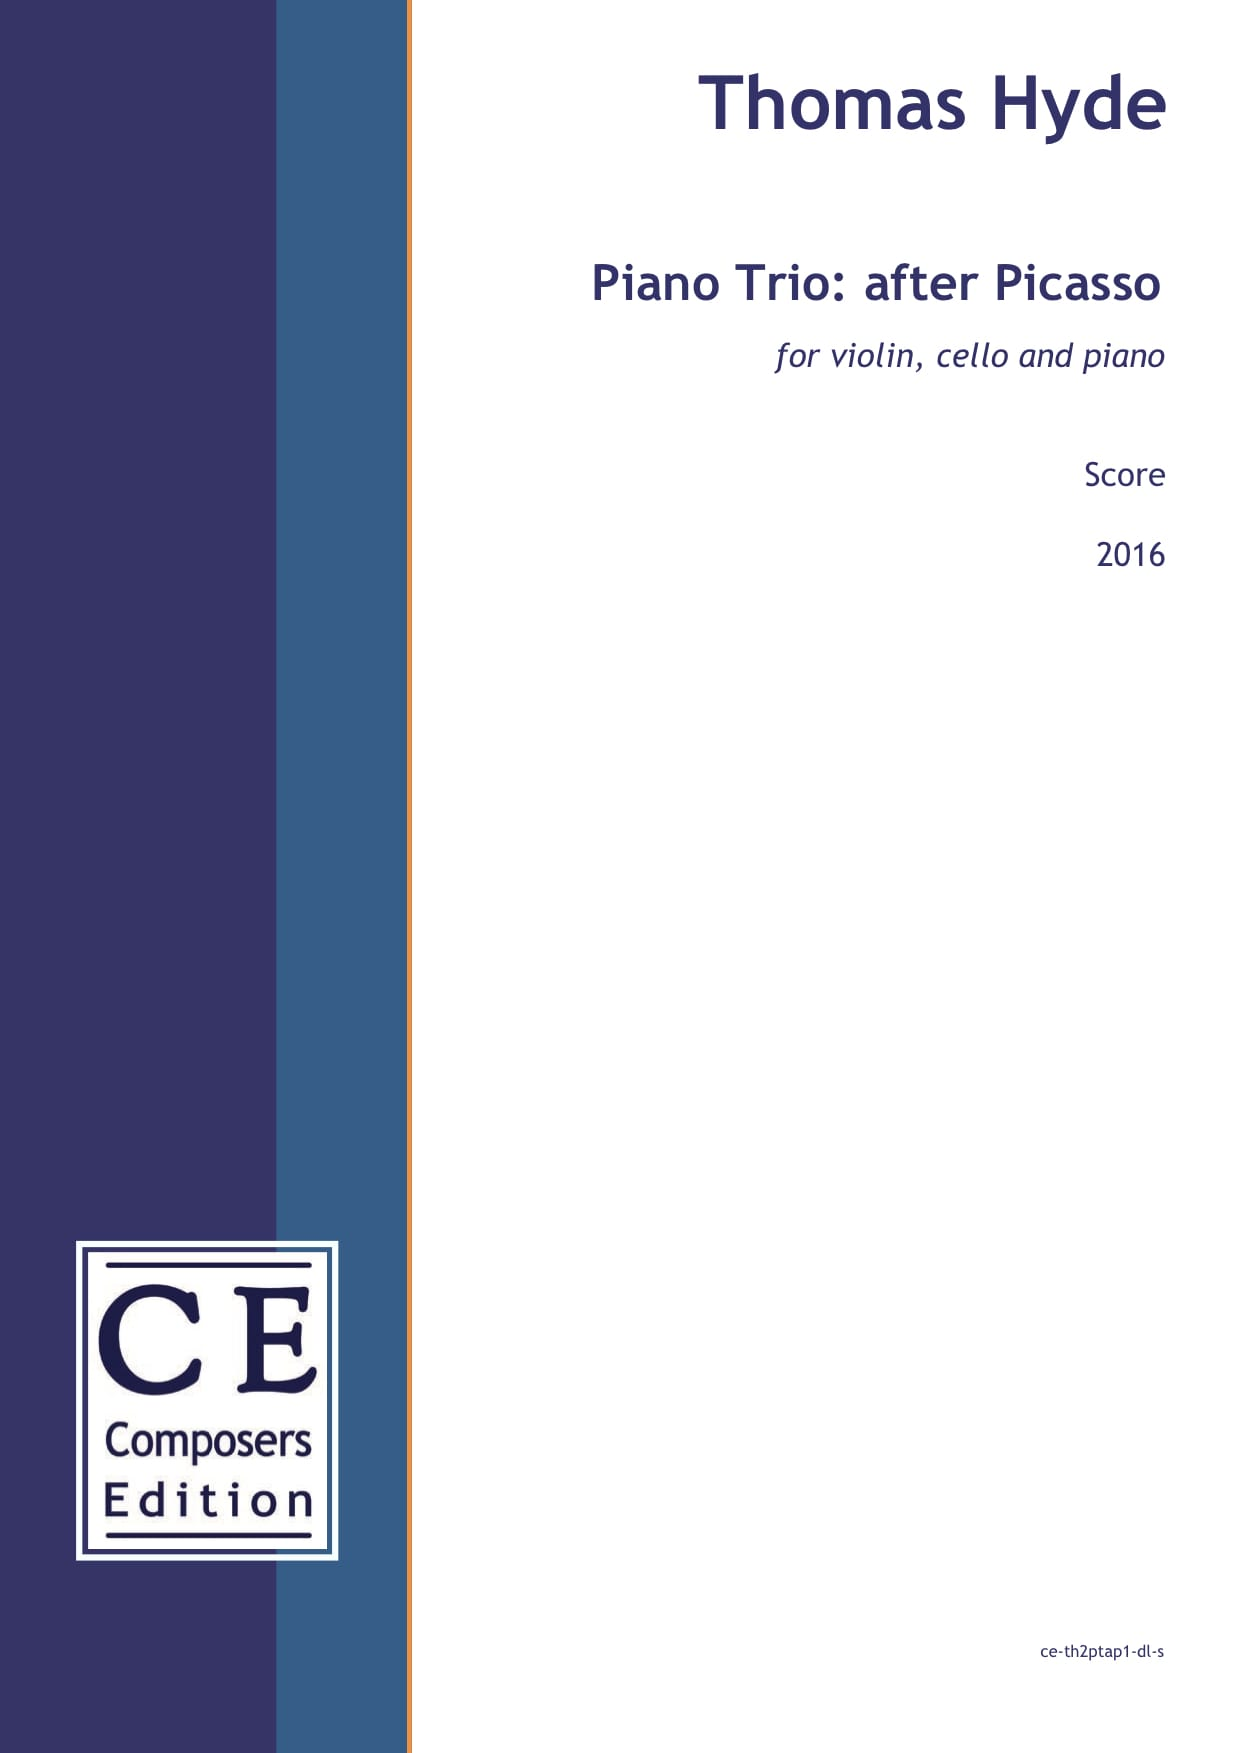 Thomas Hyde: Piano Trio: after Picasso for violin, cello and piano